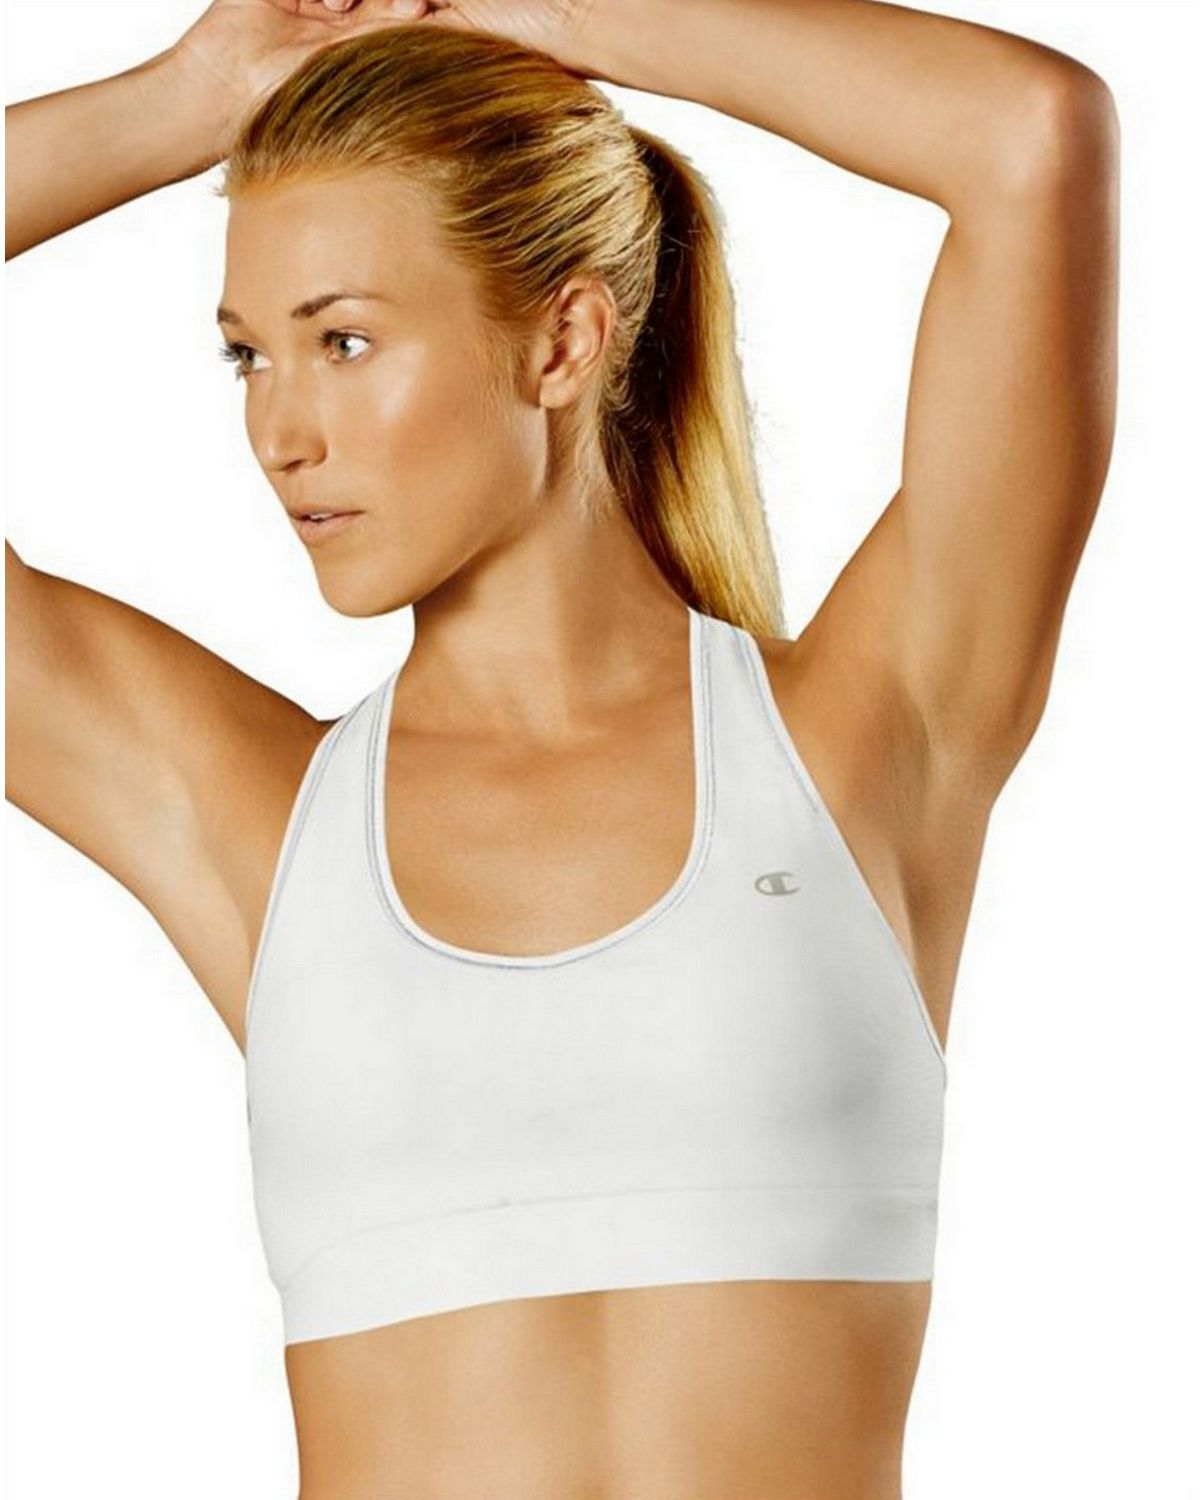 Champion B9504 Absolute Racerback Sports Bra - White - L B9504